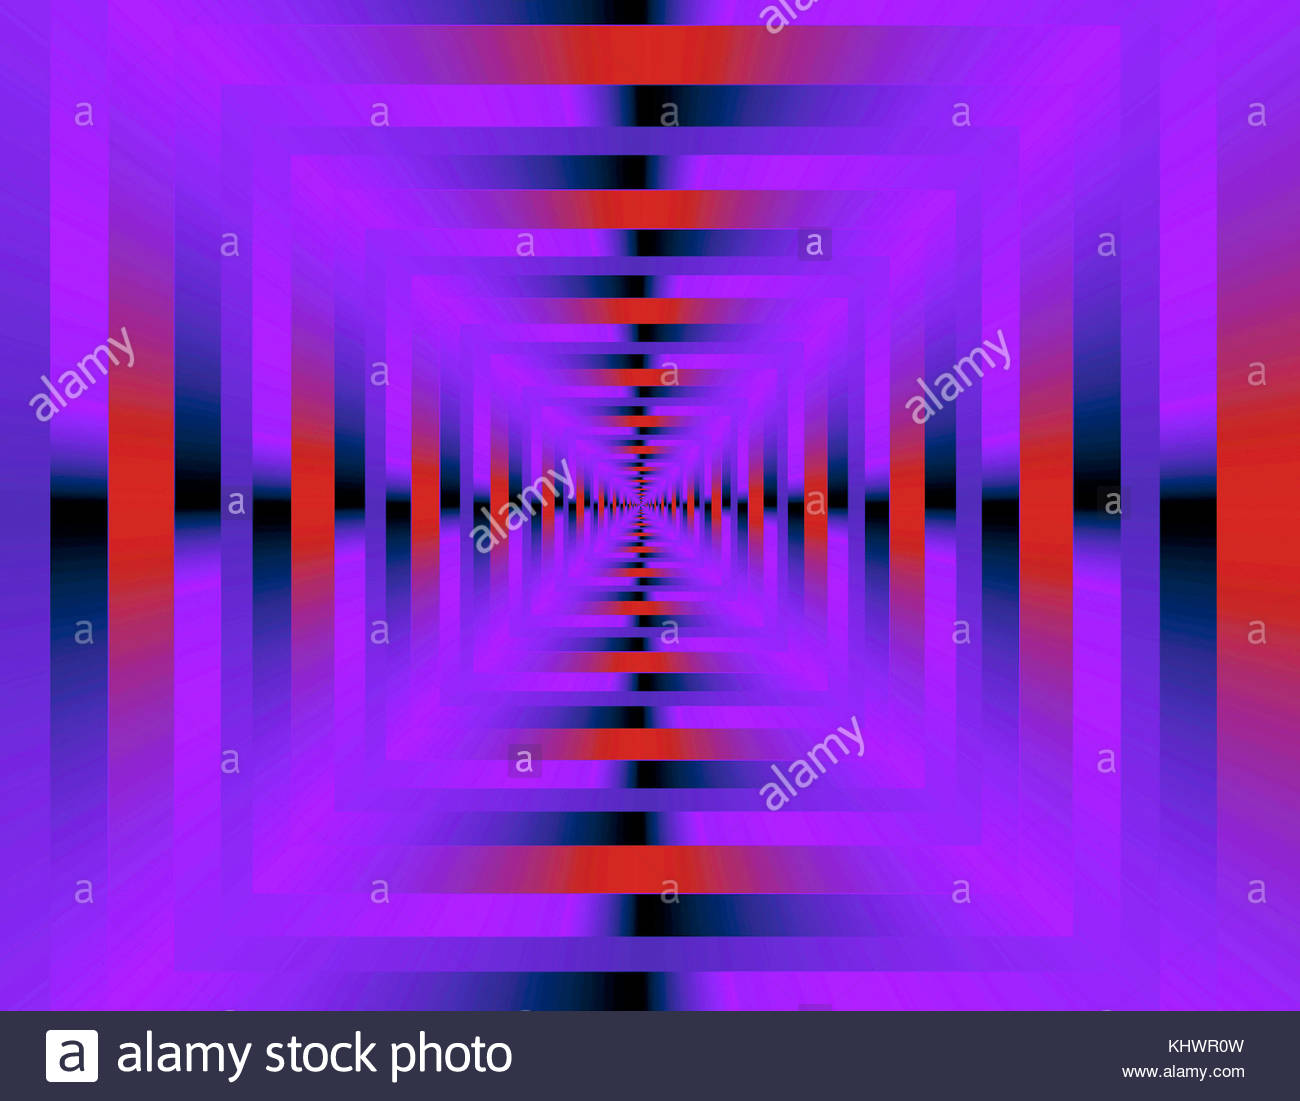 Psychological Effects Of Color Perception Illusion Stock Photos Amp Perception Illusion